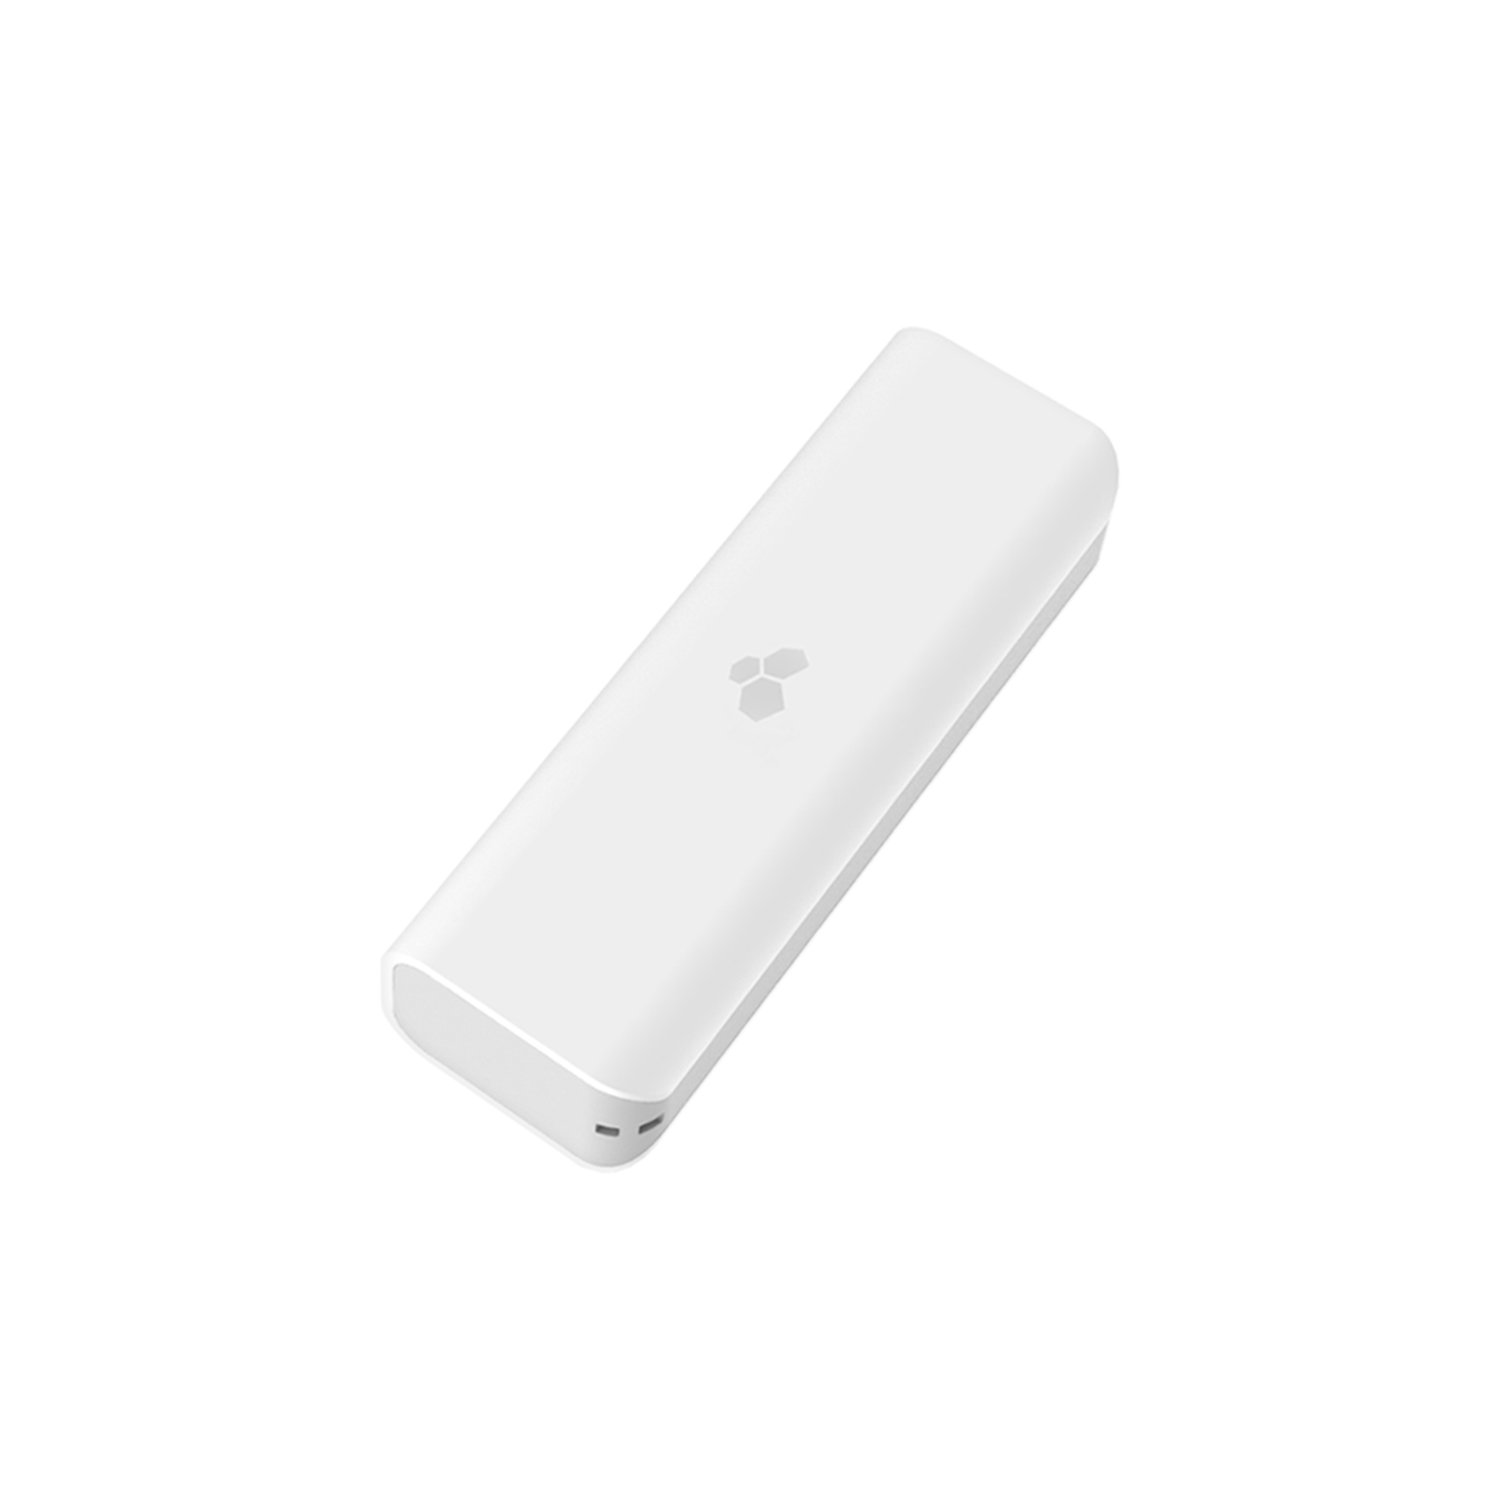 Kanex GoPower Compact Portable Battery Pack for Smartphones (2600mAh)-White